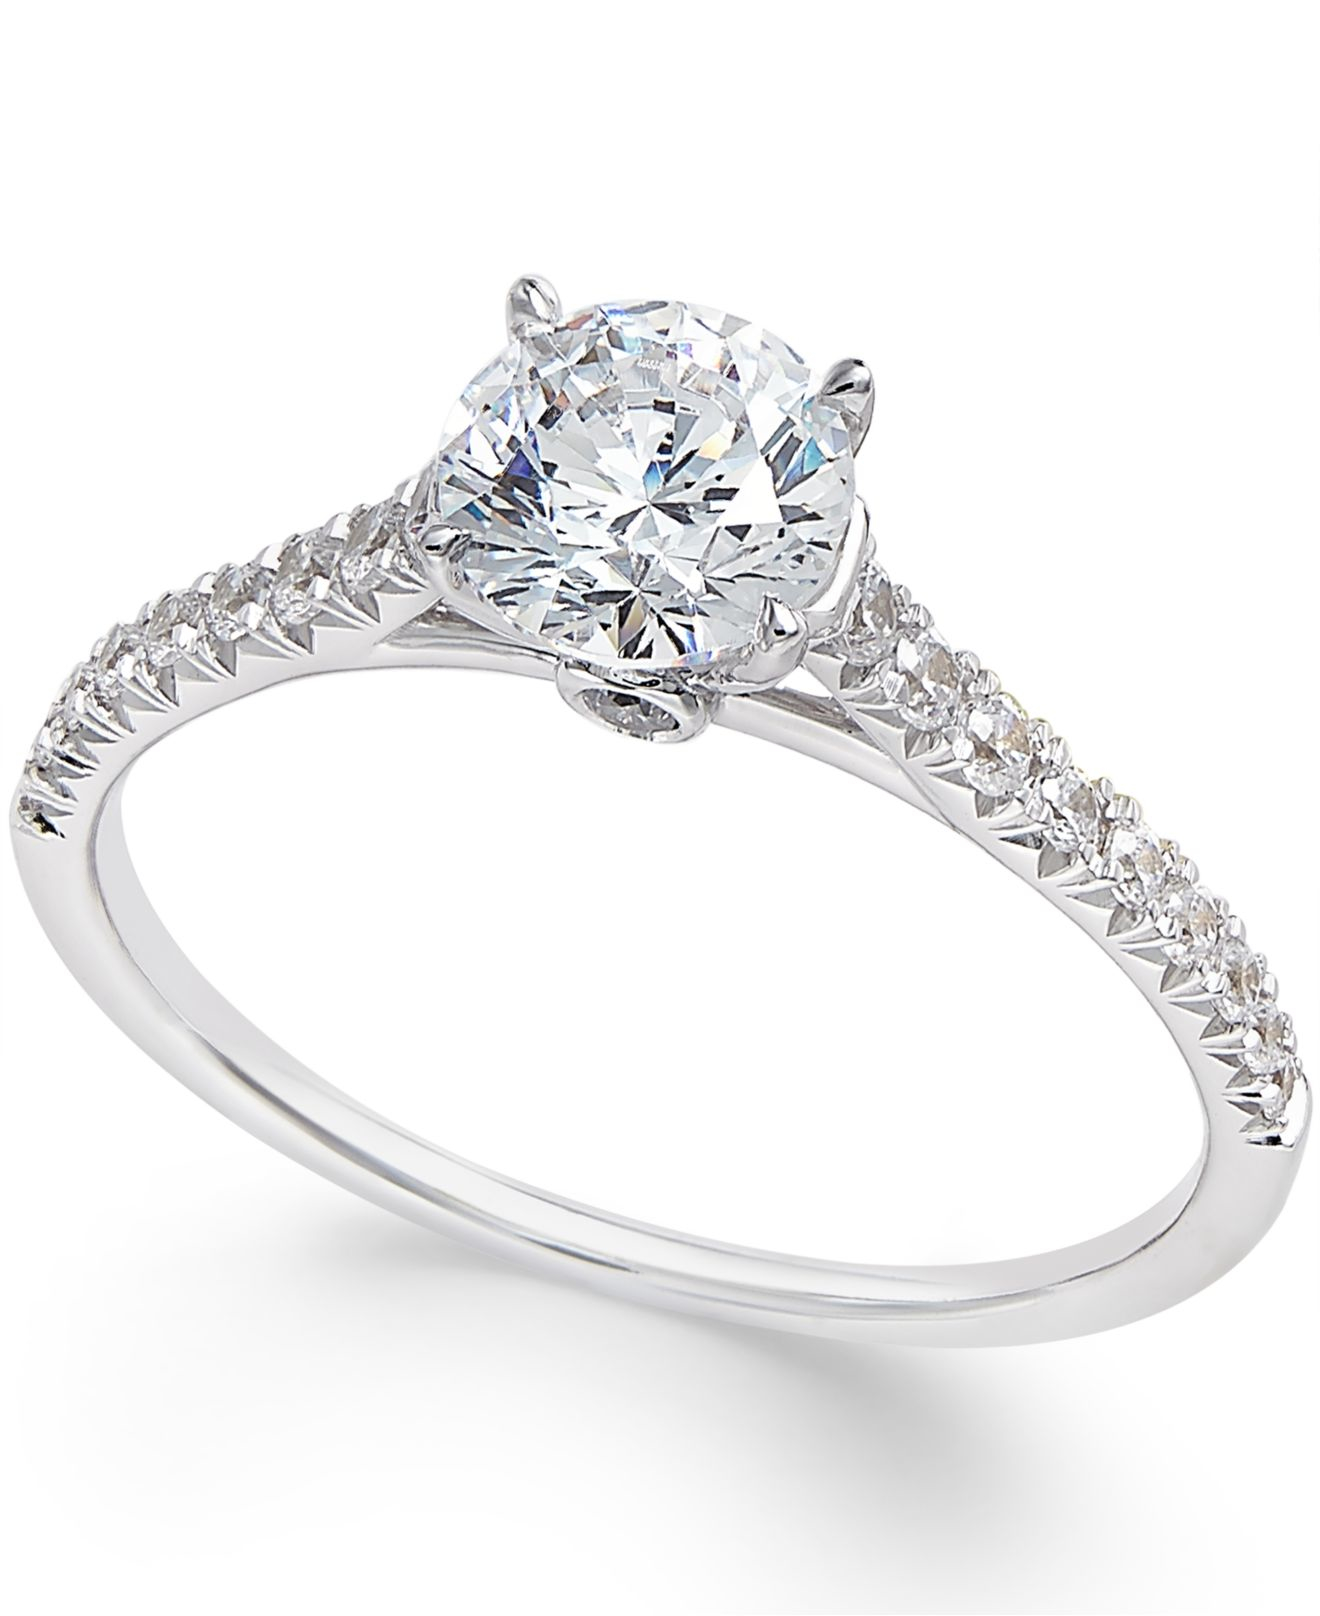 Macy s Diamond Engagement Ring 1 Ct T w In 14k White Gold in Metallic